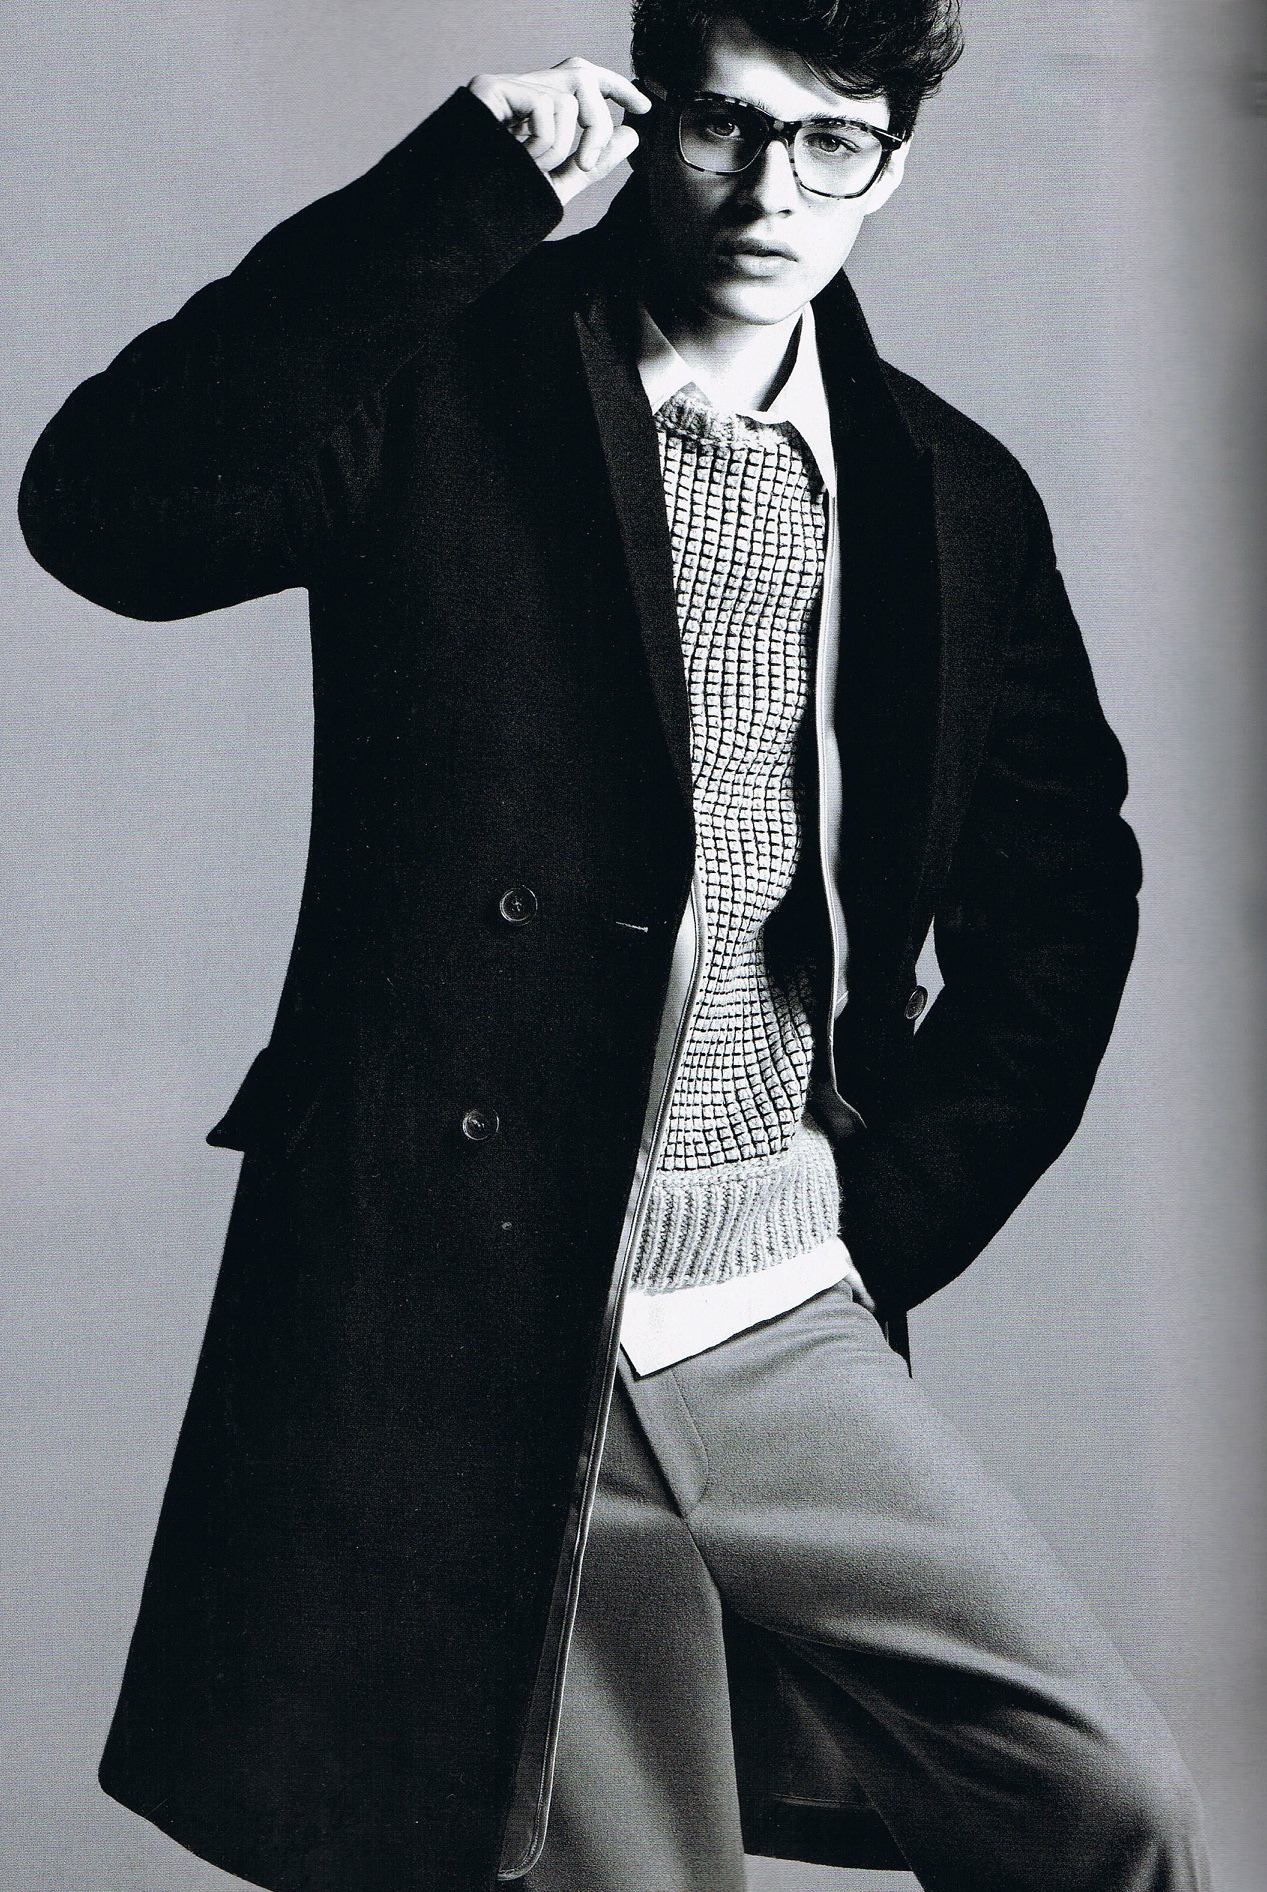 ianaitch:  Almost Sunset Magazine: GQ China #Oct 2012 Photography: Chad Pitman Styling: Sean Spellman Adrien Sahores wearing Gucci coat & Calvin Klein pullover and trousers   It's is cute!!!!!!! I have to order 1 copy soon.